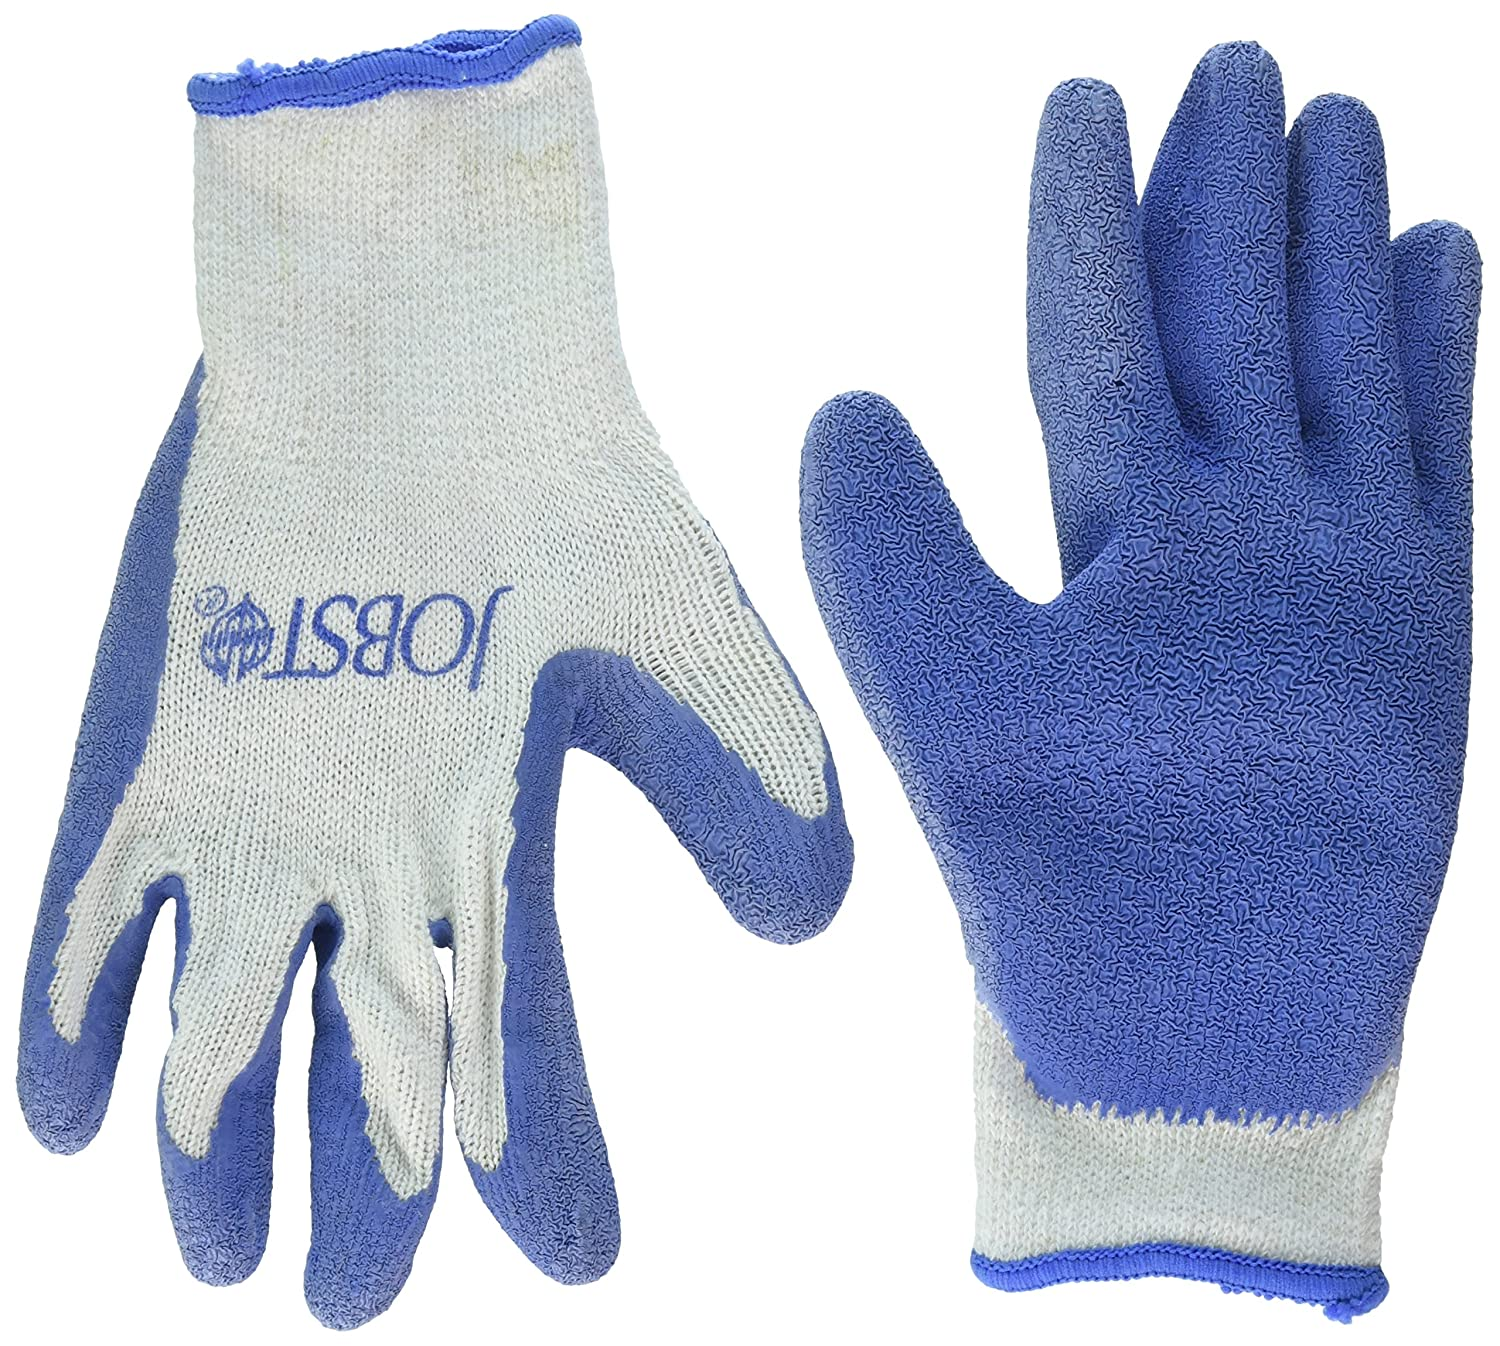 Beiersdorf-Jobst Compression Stocking Donning Gloves, Small by Beiersdorf-Jobst B003PGAYQ6